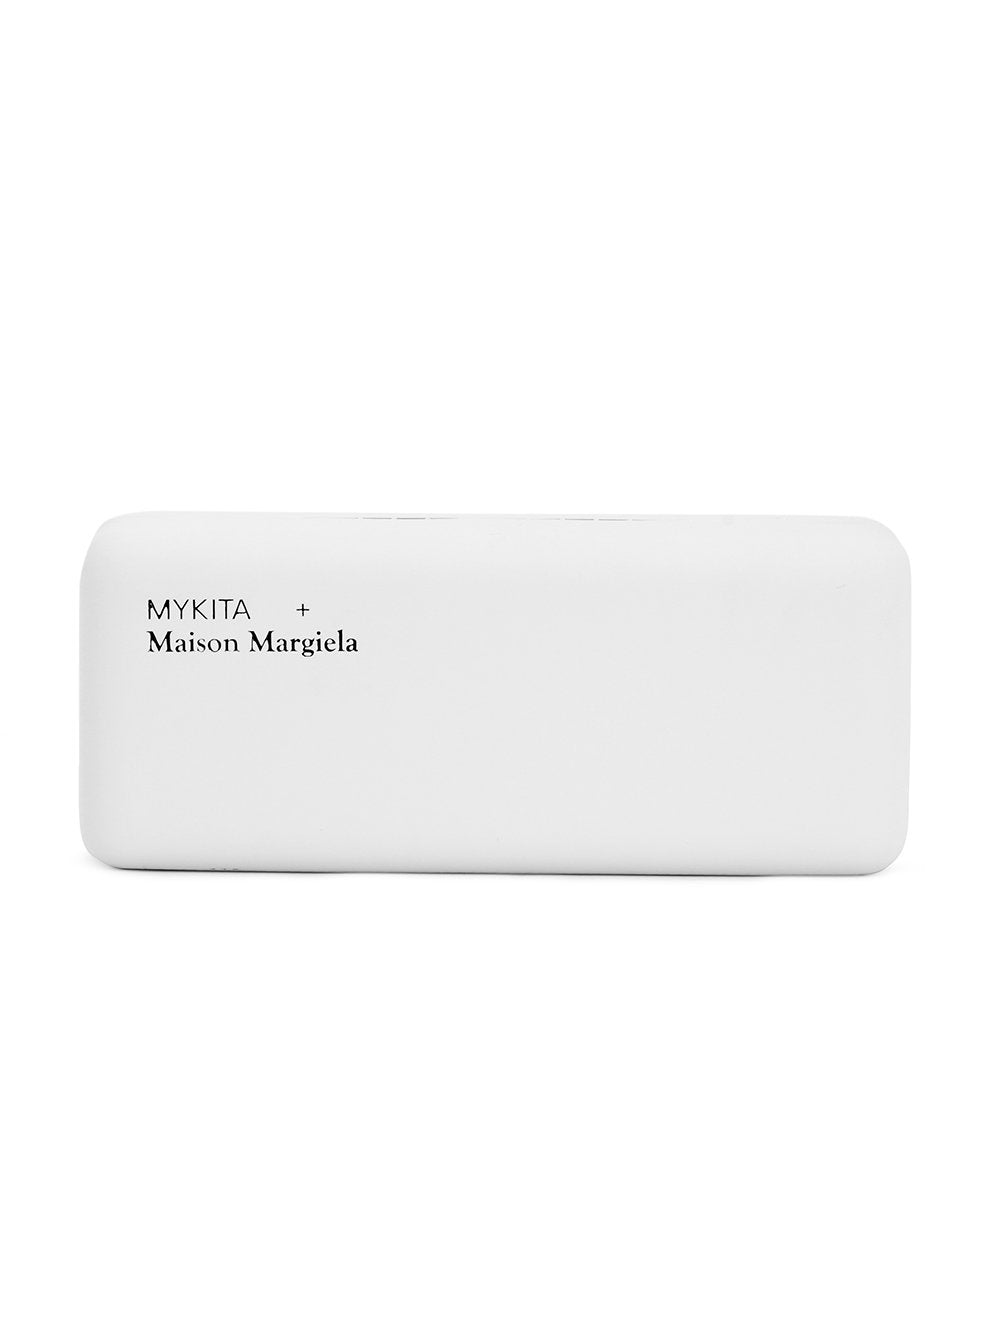 Mykita x Margiela Alien Sunglasses Case - 4